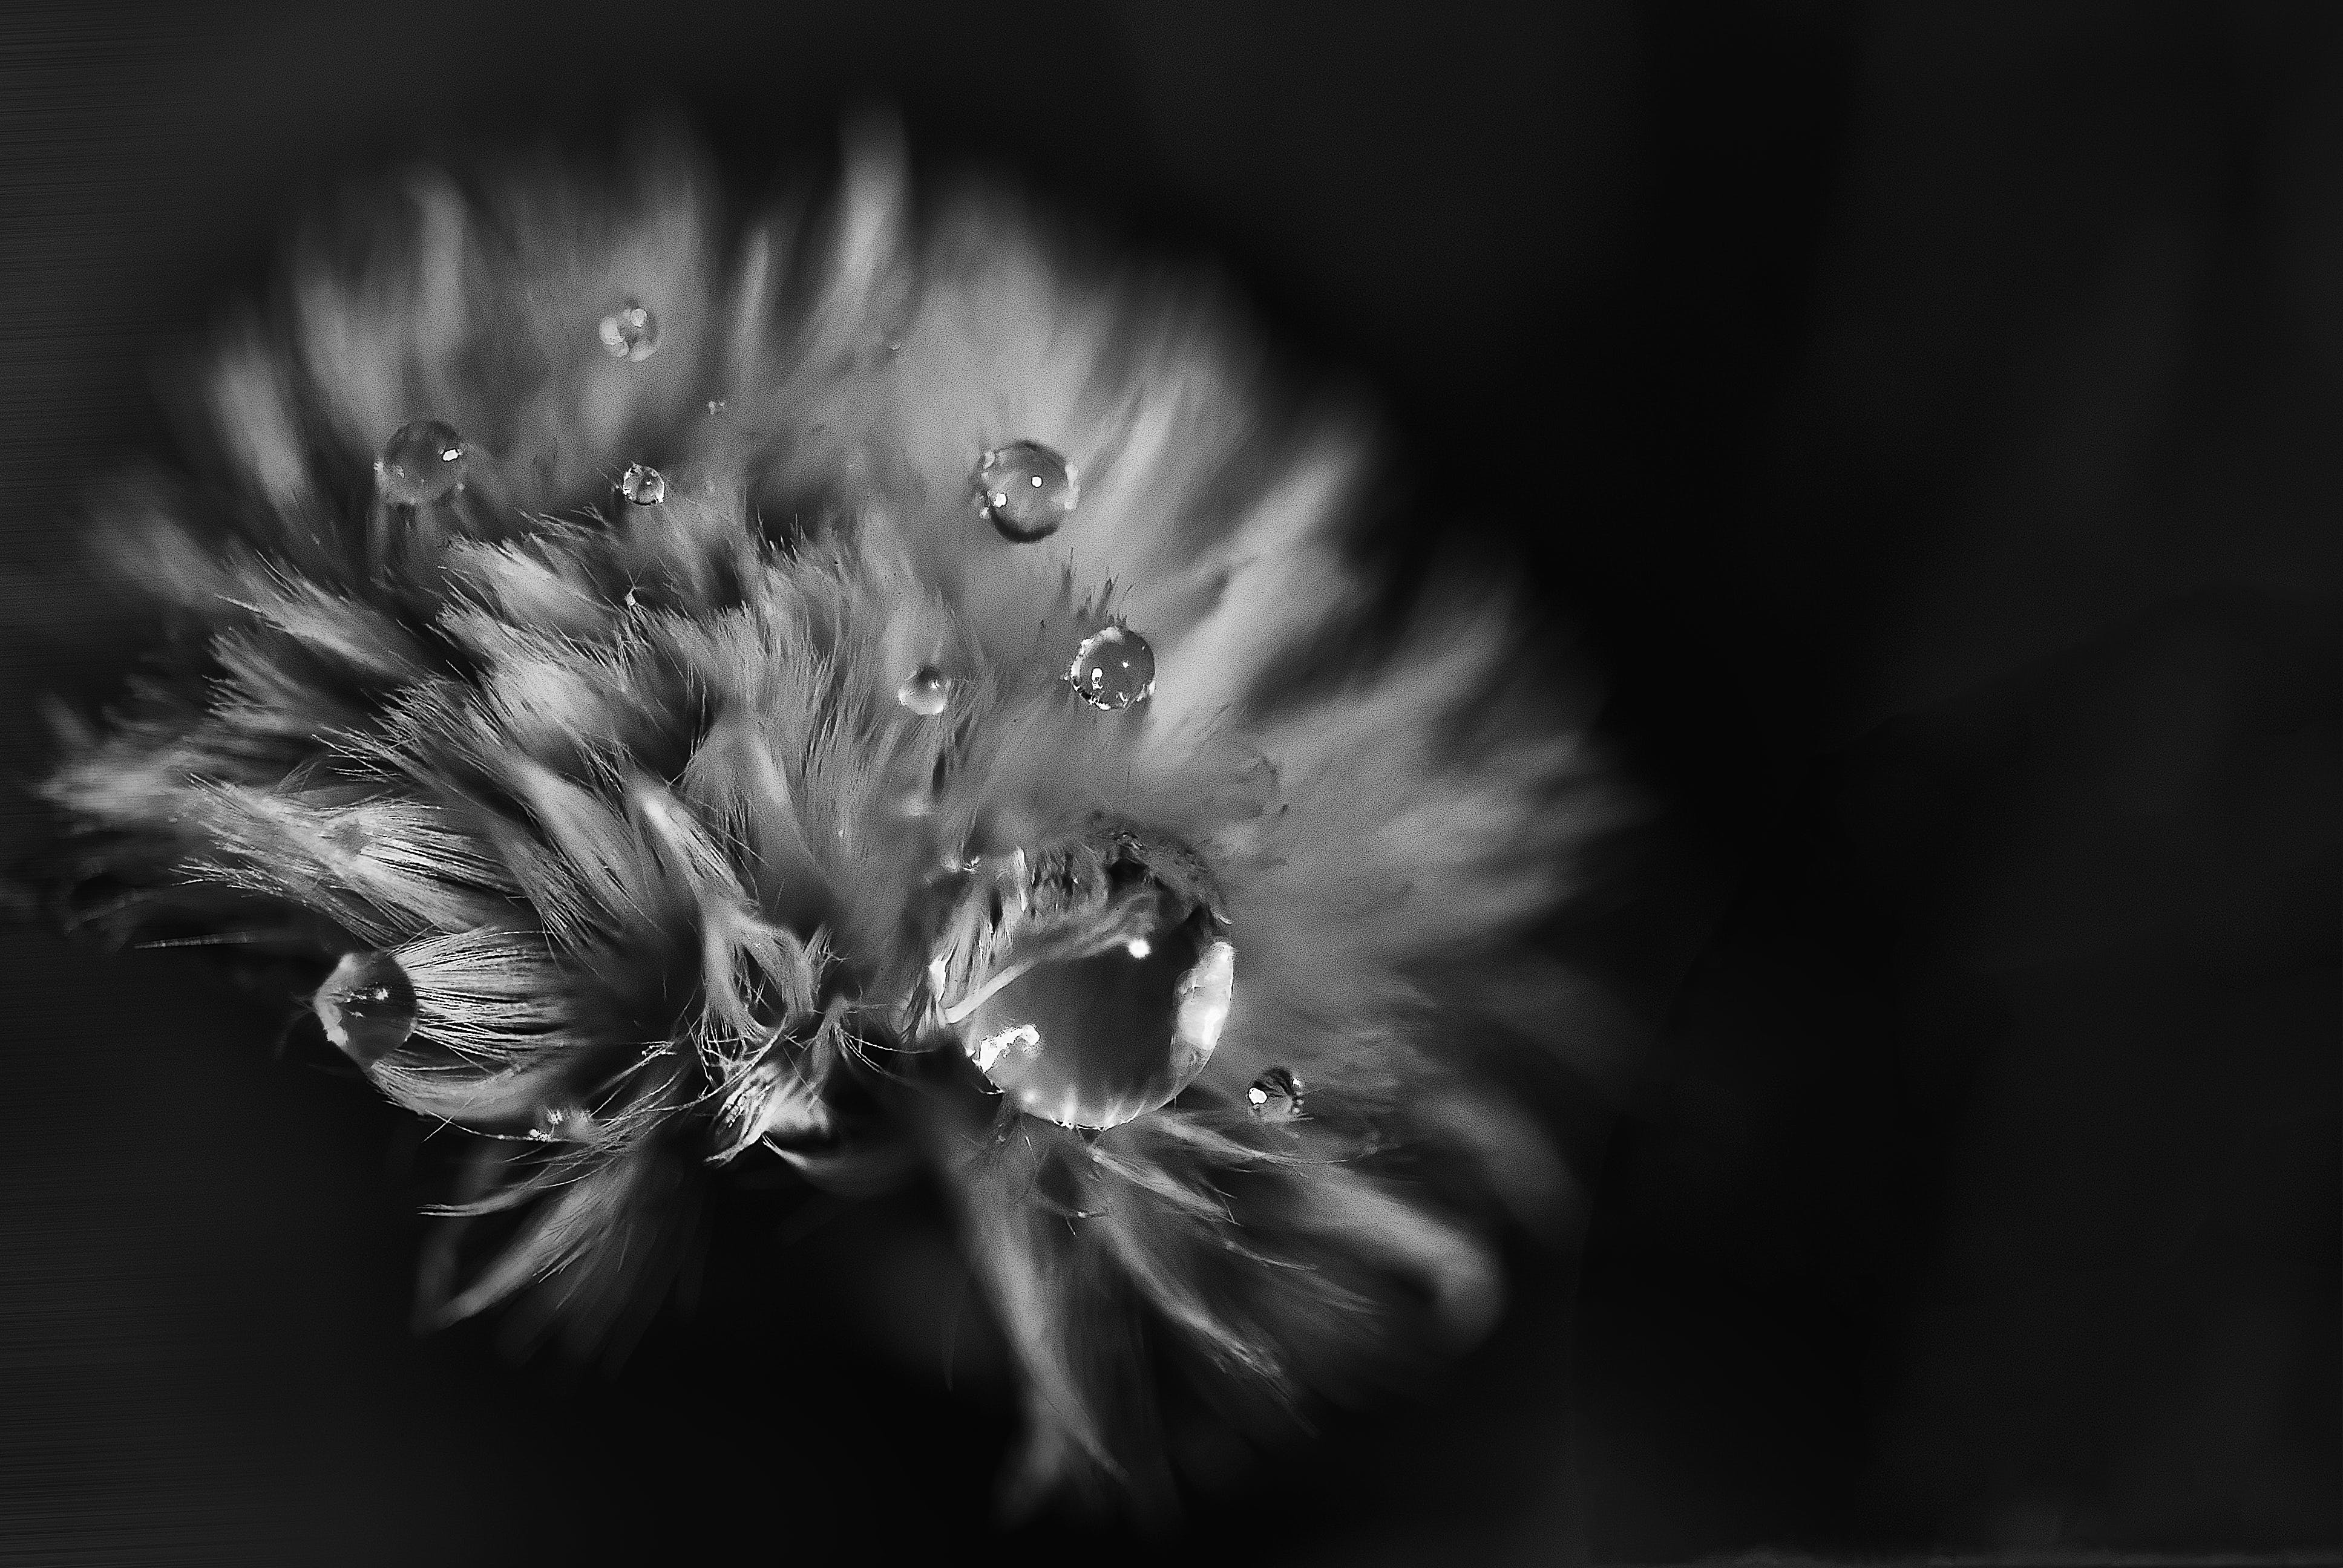 Greyscale Photo of Petaled Flower With Dew Drops